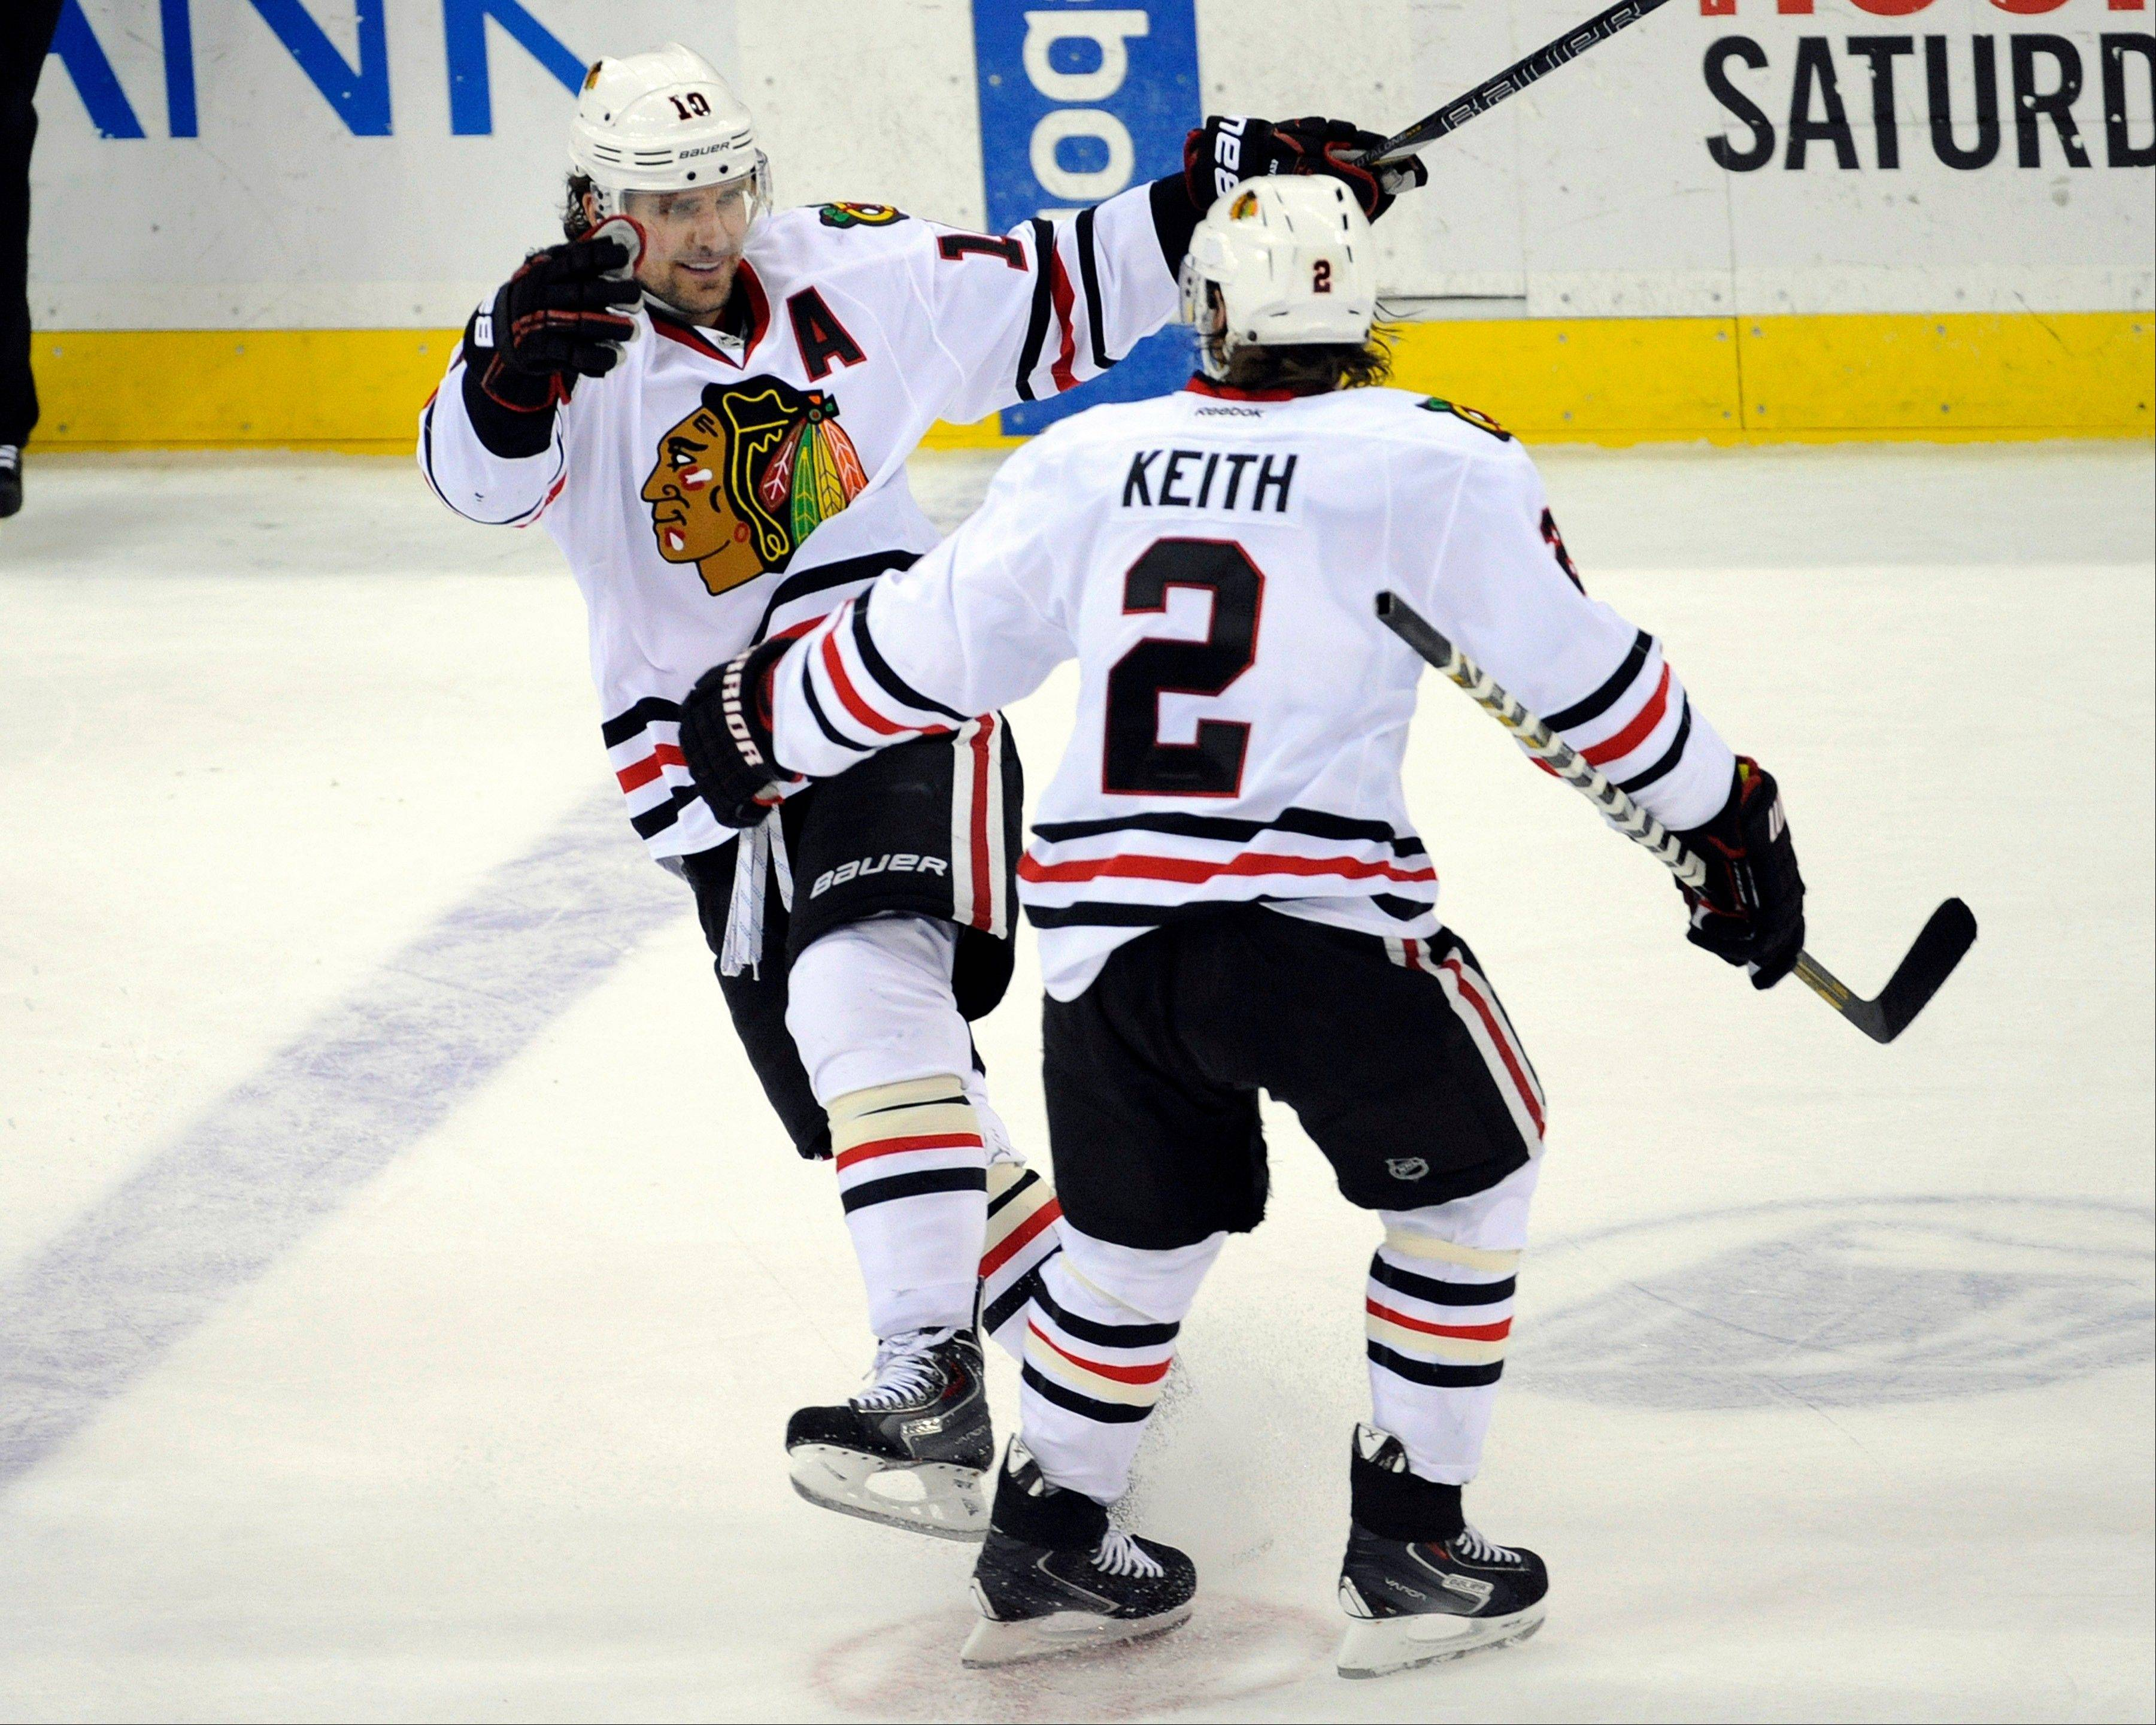 The Blackhawks� Patrick Sharp celebrates his hat trick with Duncan Keith (2) during Friday night in Newark, N.J. The Blackhawks beat the Devils 5-3.